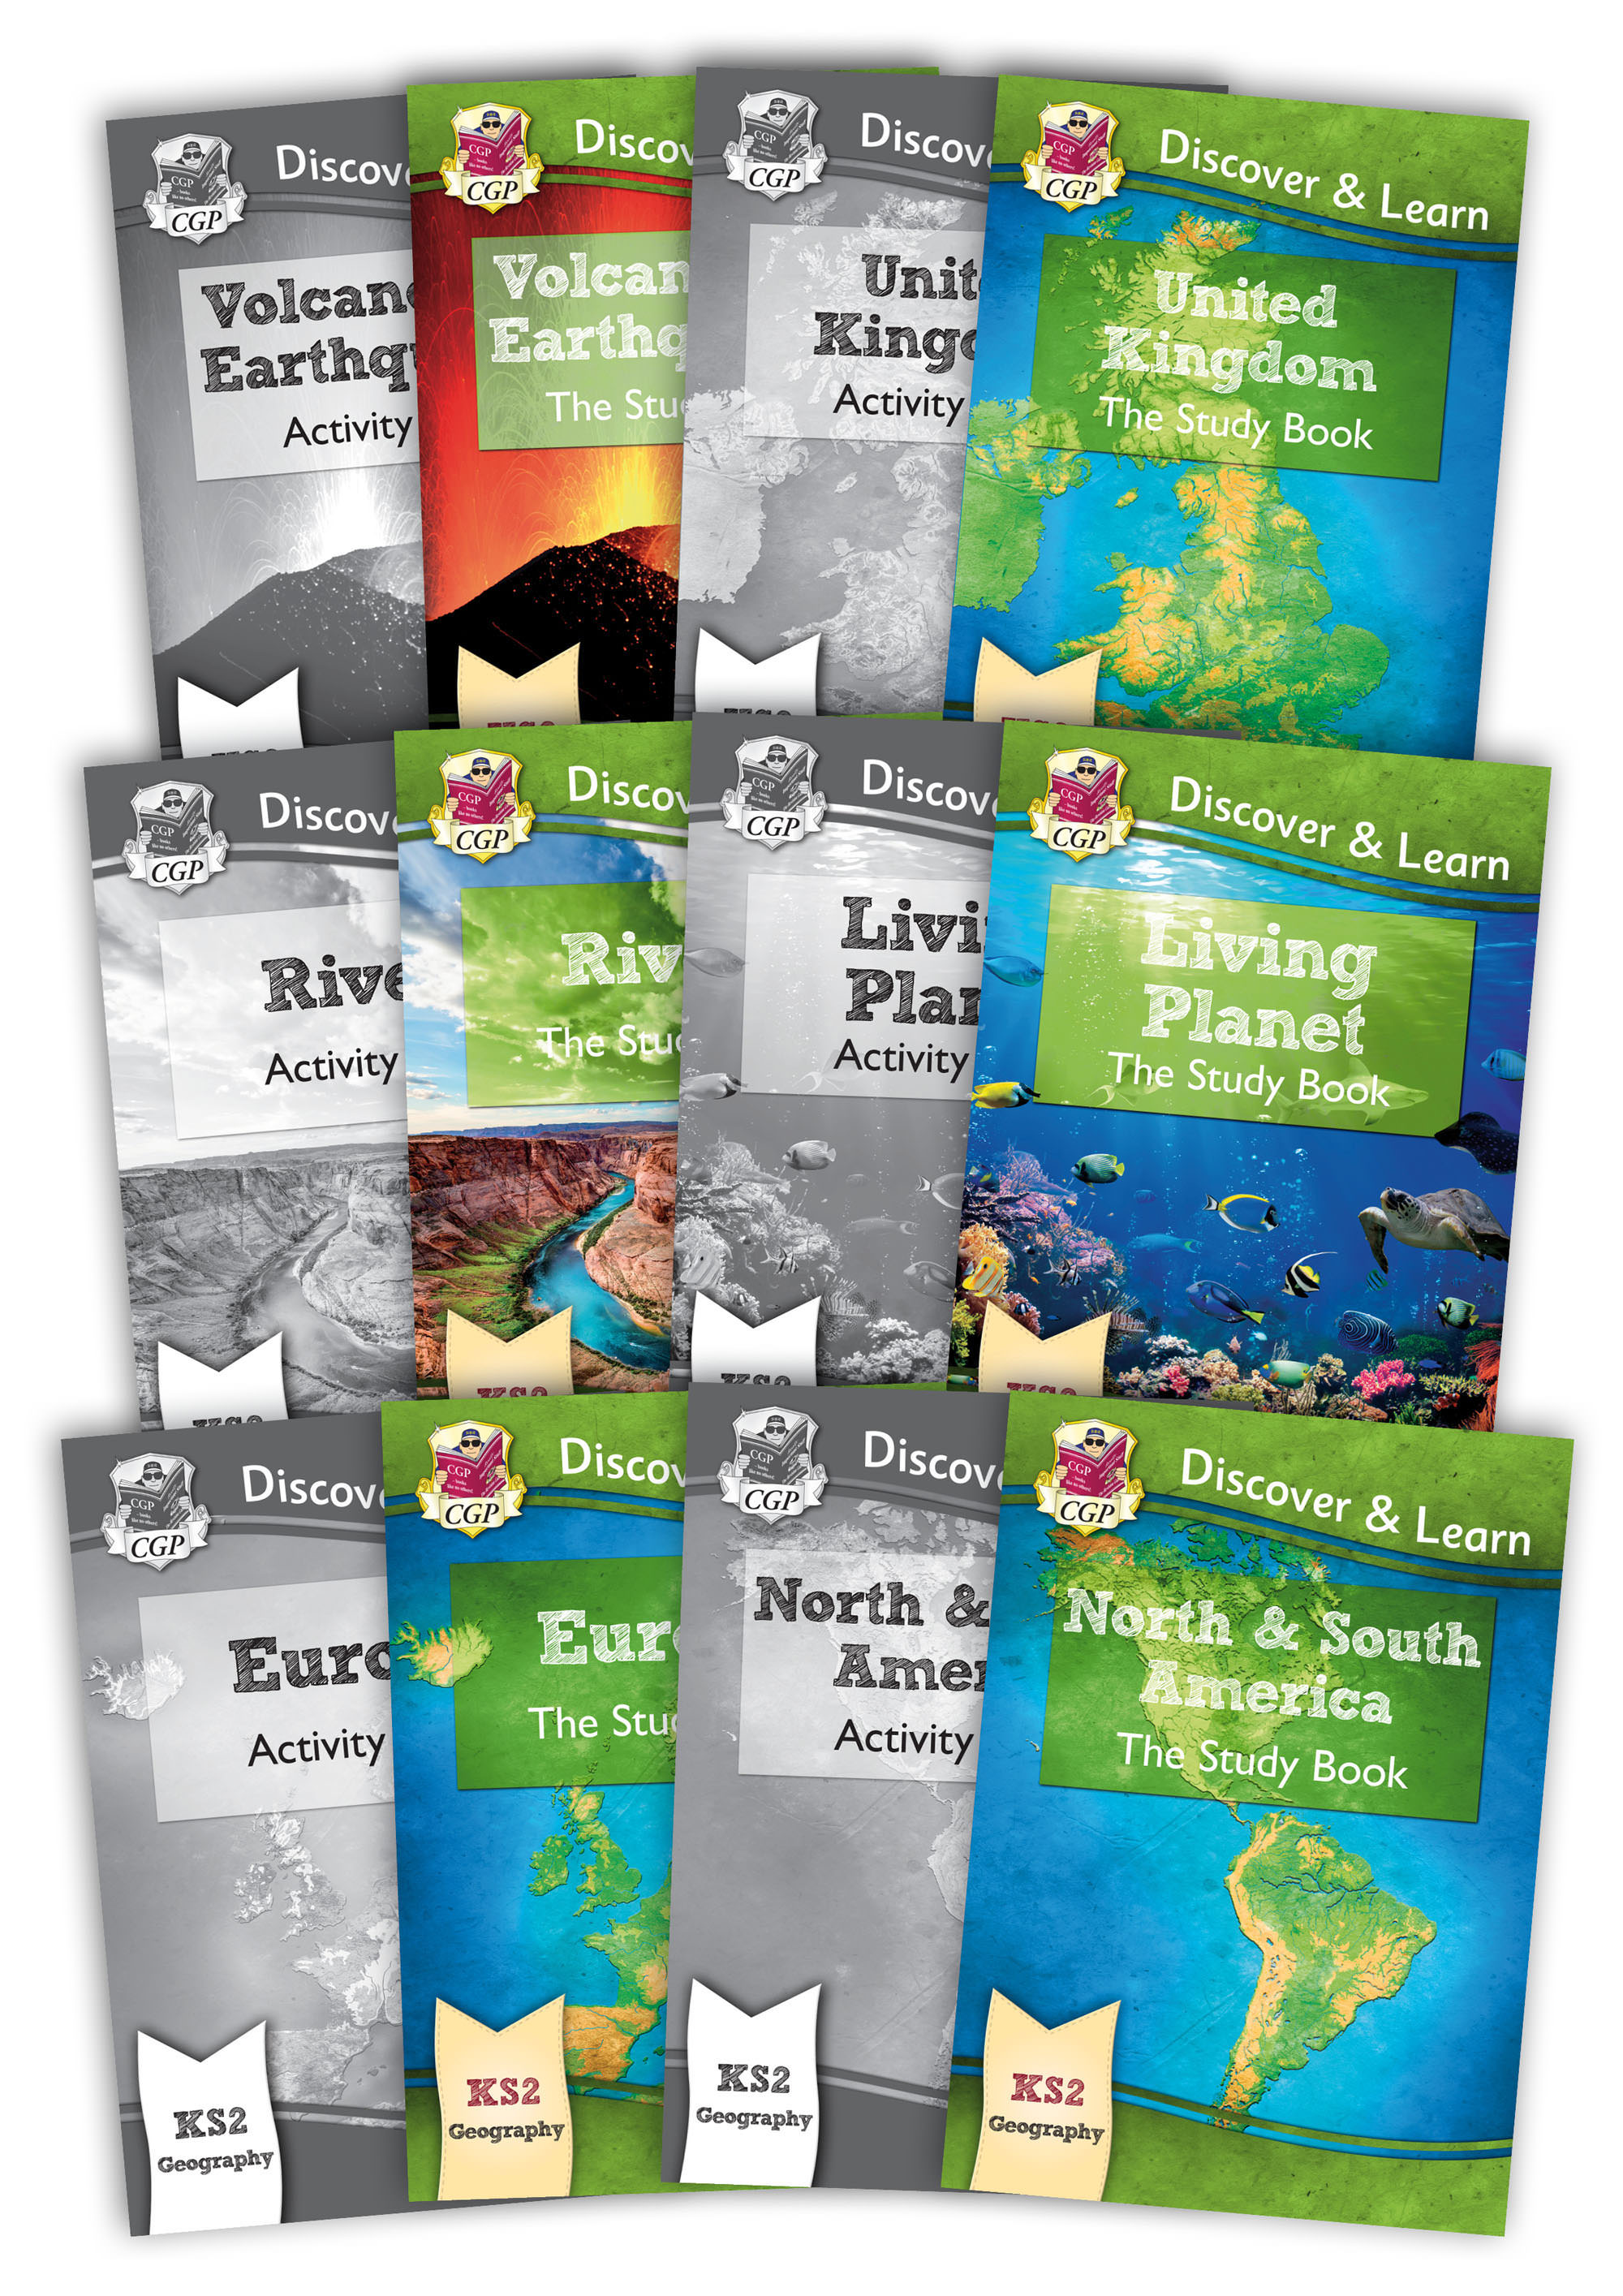 GMB21 - New KS2 Discover & Learn: Geography - Complete 12 Book Bundle